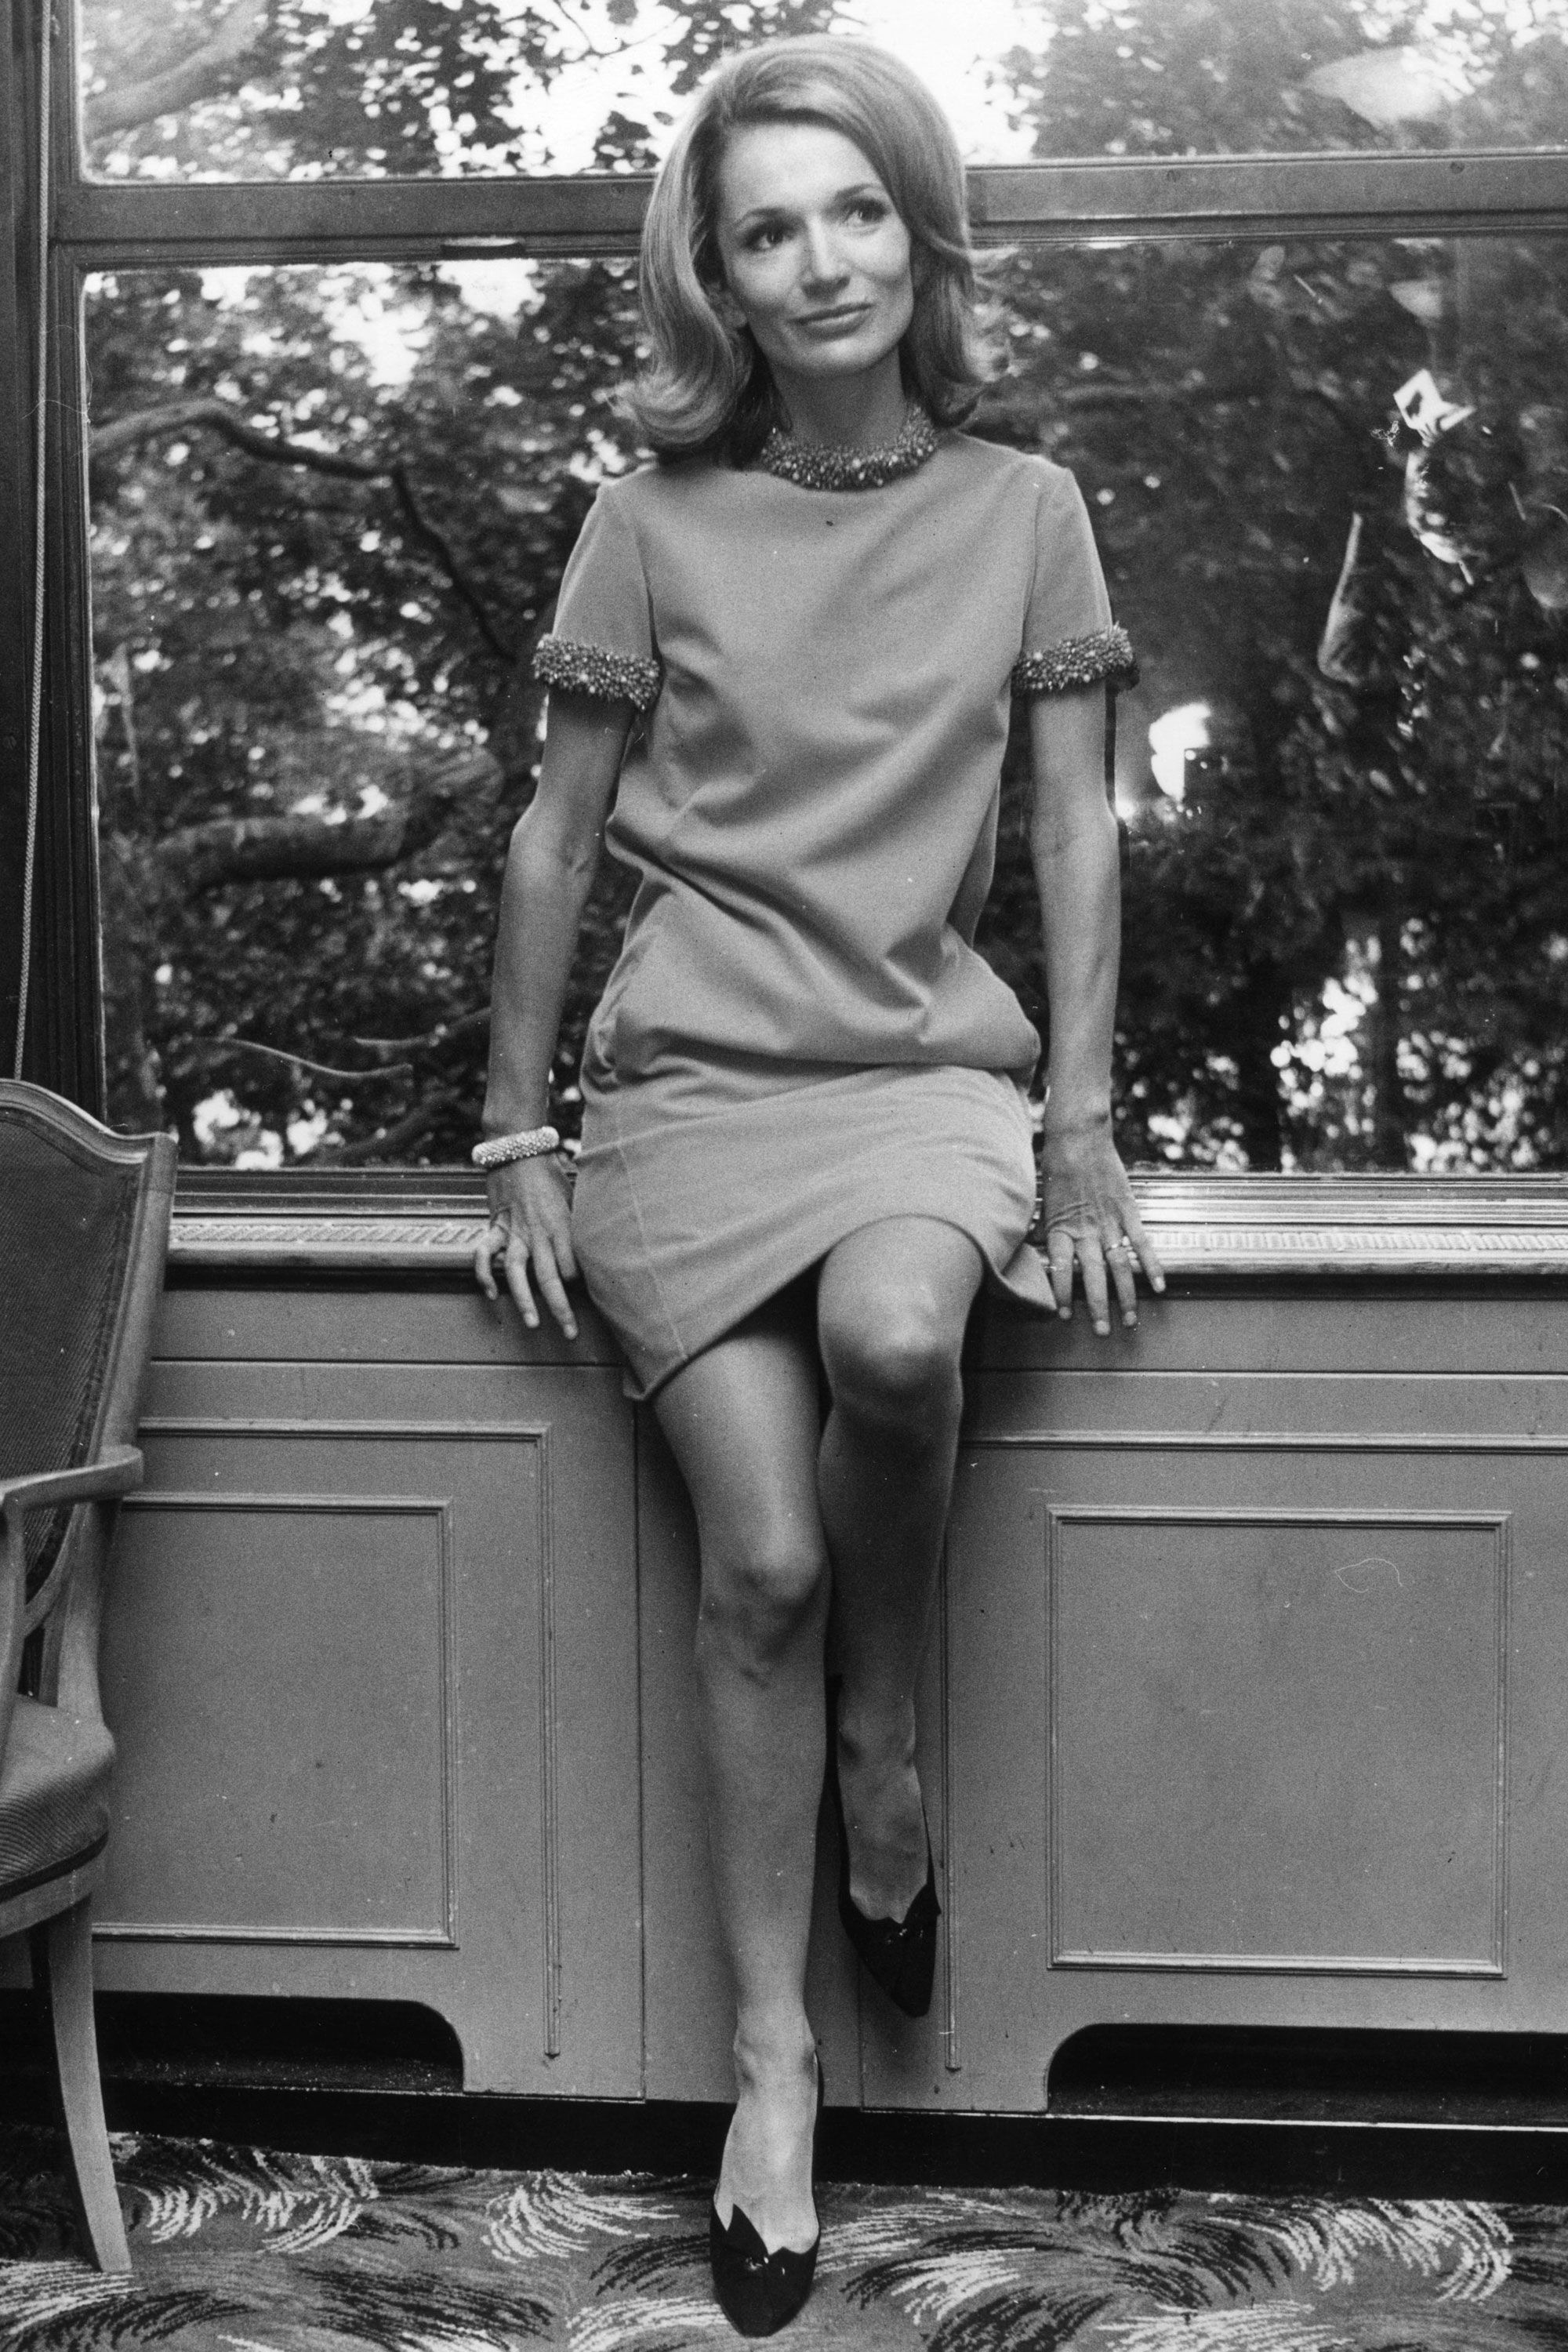 <p>Jackie Kennedy's younger sisterLee Radziwill was born Caroline Lee Bouvier in tony Southampton, New York. Her second marriage—in 1959, just before JFKofficially announced his candidacy for the Presidency—was to Polish prince Stanisław Albrecht Radziwill. Long considered the prettier, more vivacious sister—though Jackie was known as a fashion icon, Lee had a more inherent sense of style and eventually was named to the International Best Dressed List's Hall of Fame—Lee still lived much of her otherwise vibrant life in Jackie's shadow. (She had an affair with Aristotle Onassis before he became involved with Jackie and was reportedly furious when her sister married him.) Her marriage to Prince Radziwill lasted 15 years and produced two children, Anthony and Tina; now in her 80s, Lee divides her time between New York and Paris.</p>